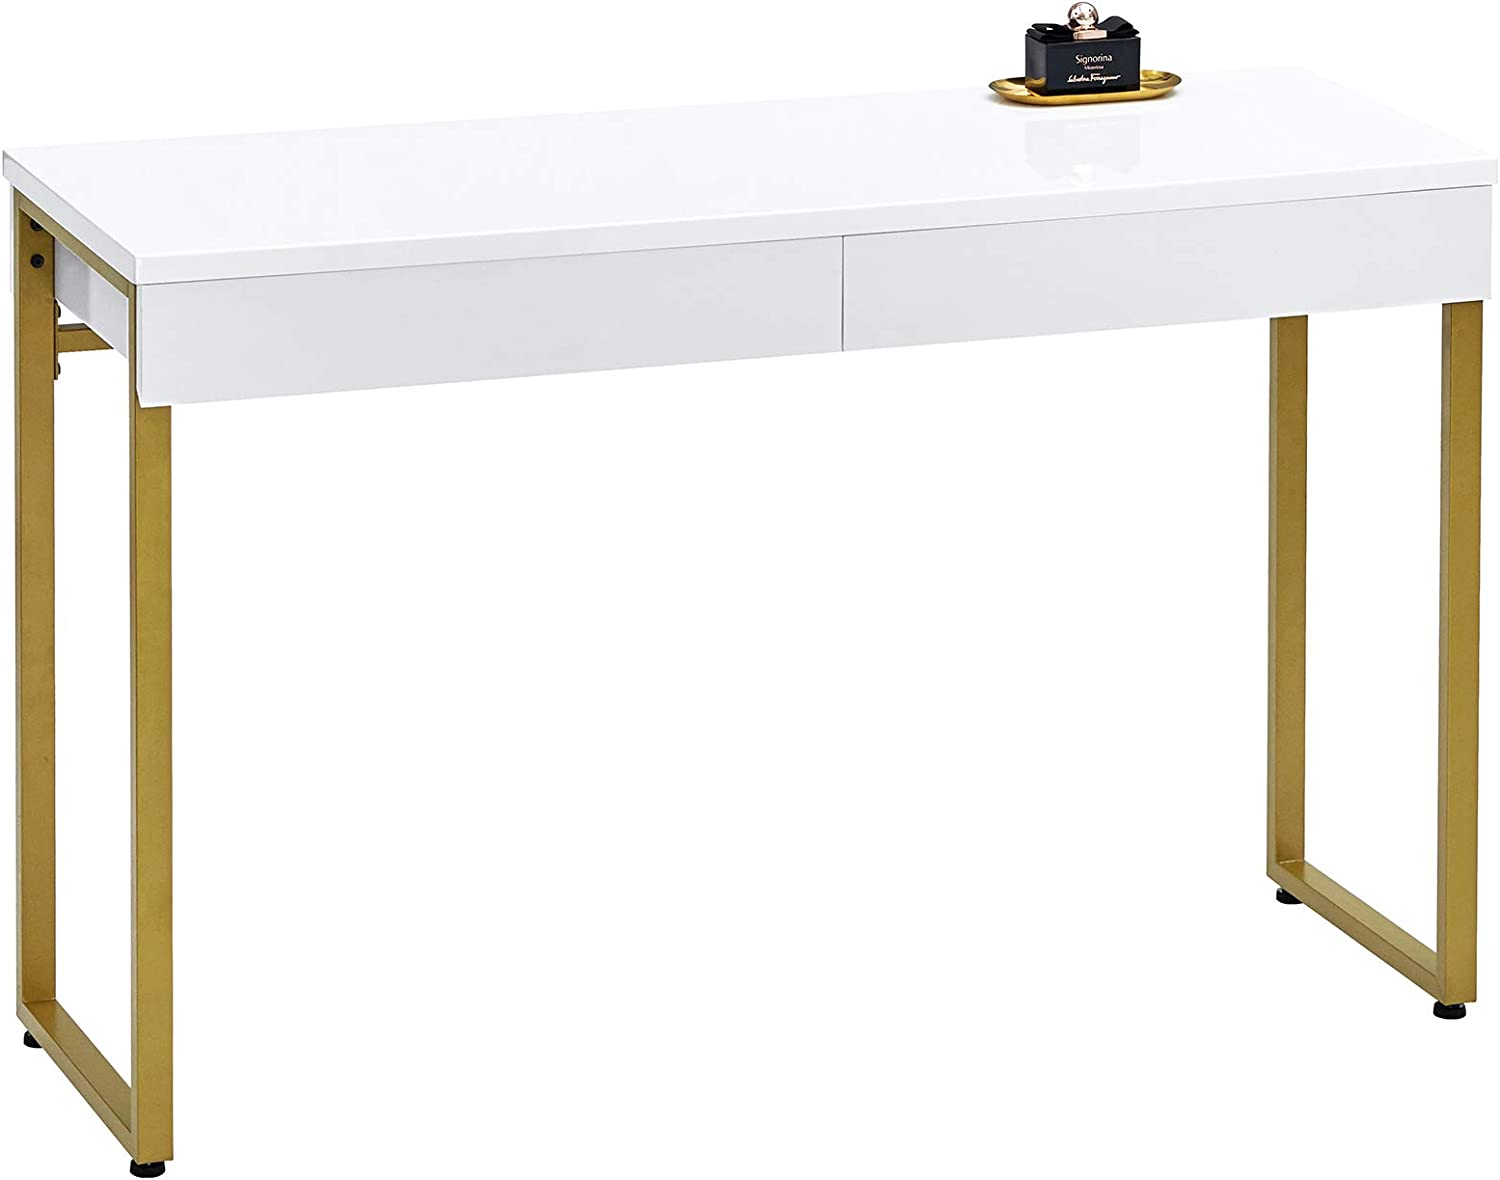 GreenForest Vanity Desk Glossy White Makeup Table 39.4inch with 2 Drawers Modern Computer Console Table with Metal Bronze Legs for Living Room Entryway Hallways